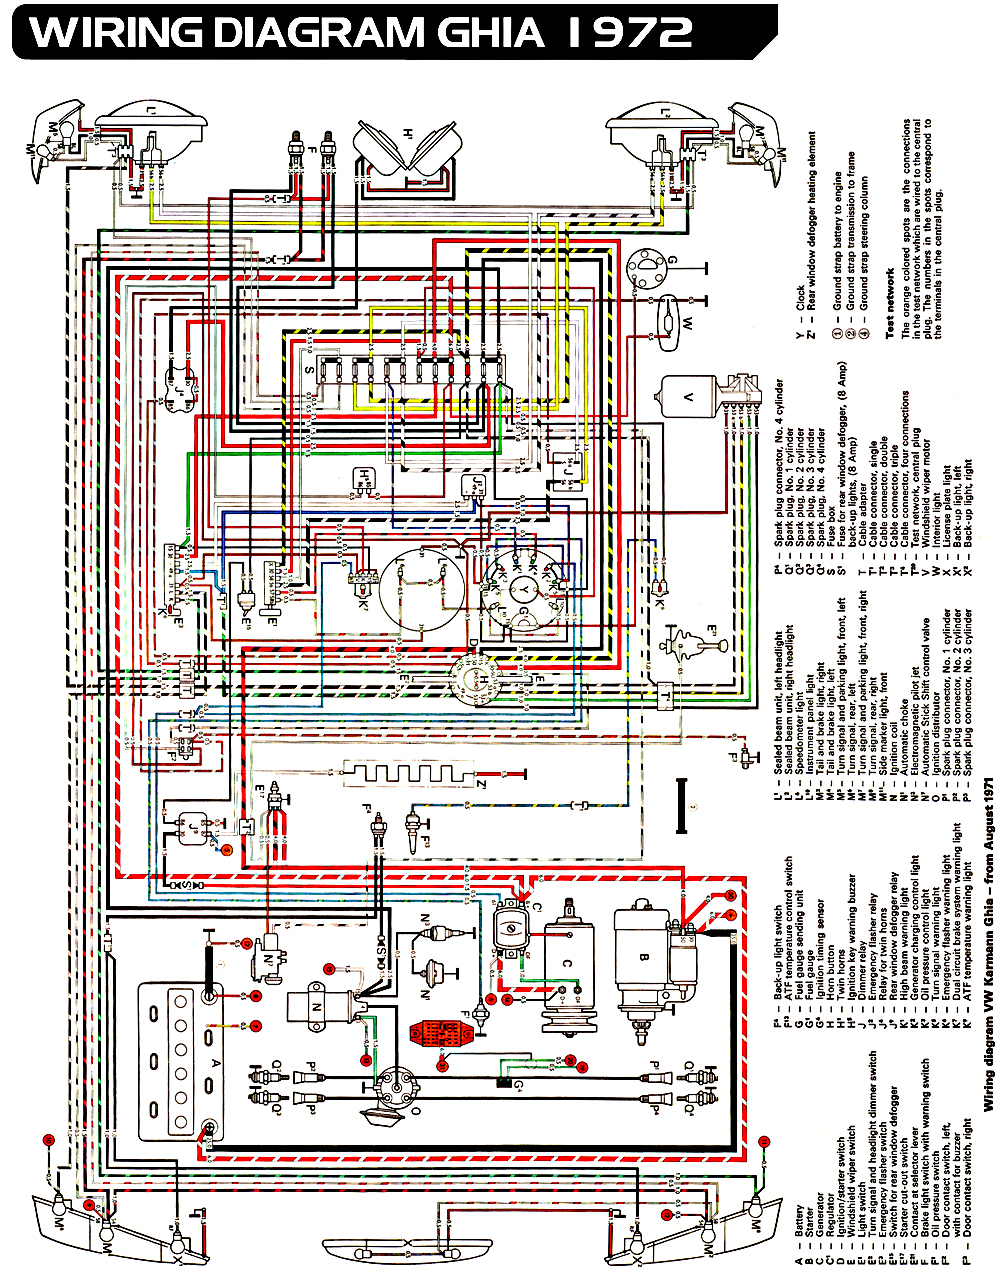 1972 vw beetle wire schematic bd 9023  1979 vw bug engine wiring  bd 9023  1979 vw bug engine wiring